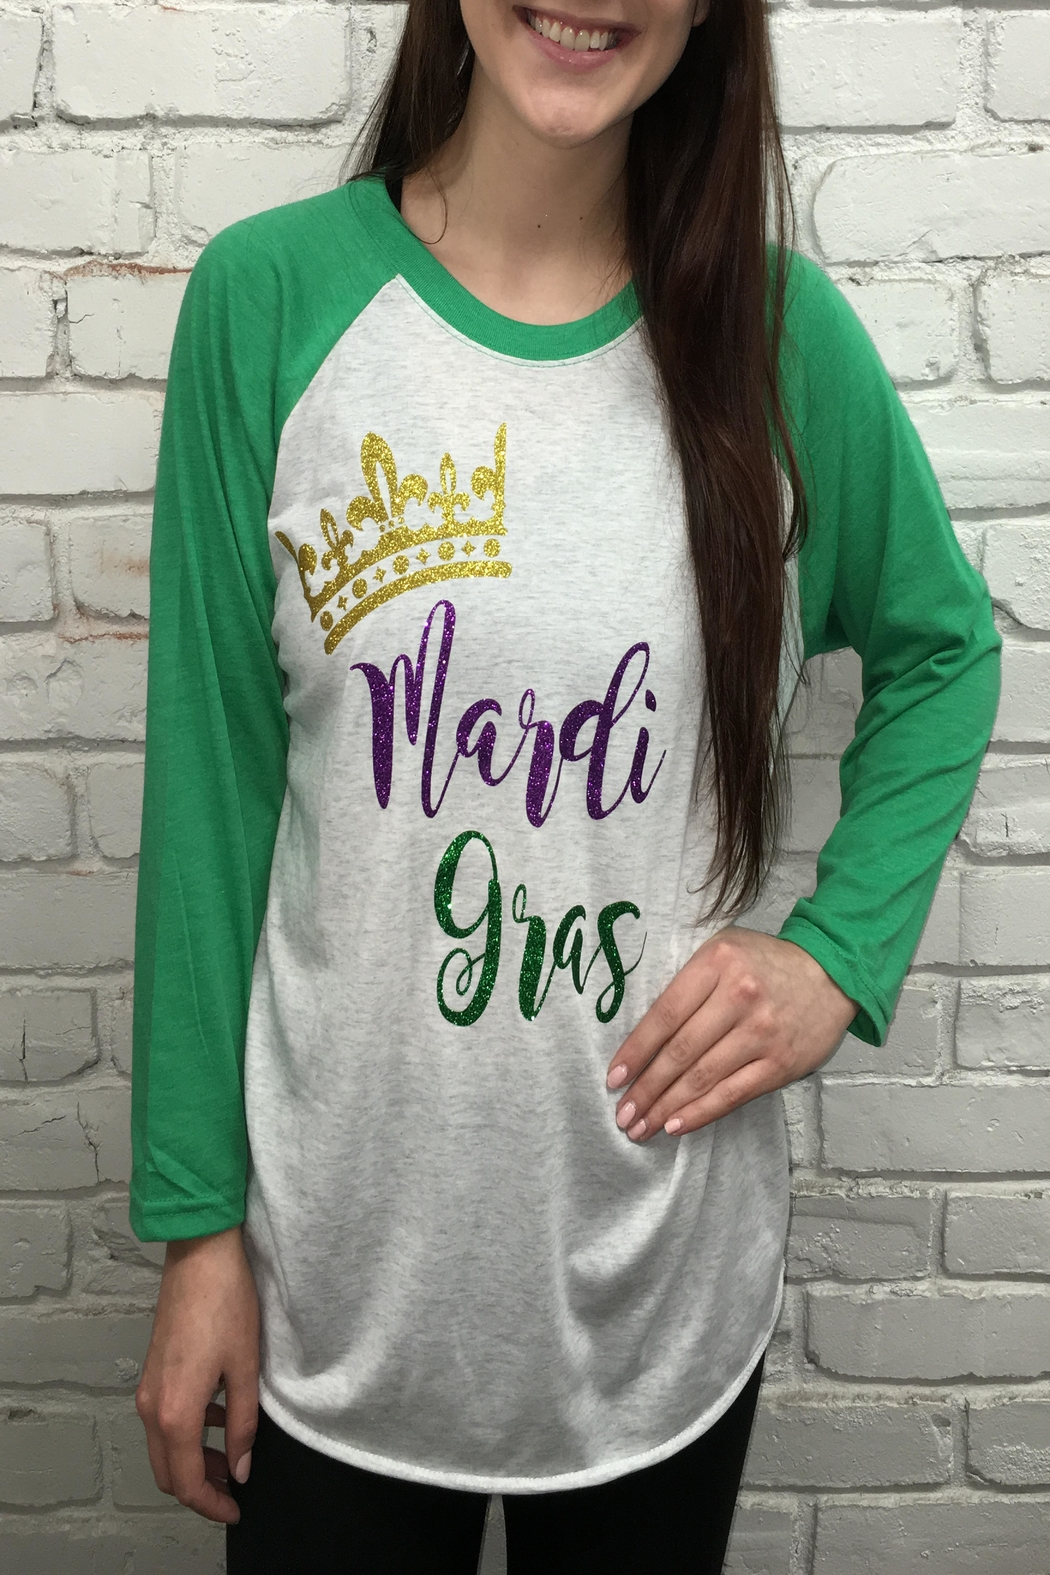 d0239ebc Next Level Mardi Gras Shirt from Louisiana by Sanctuary Home And ...